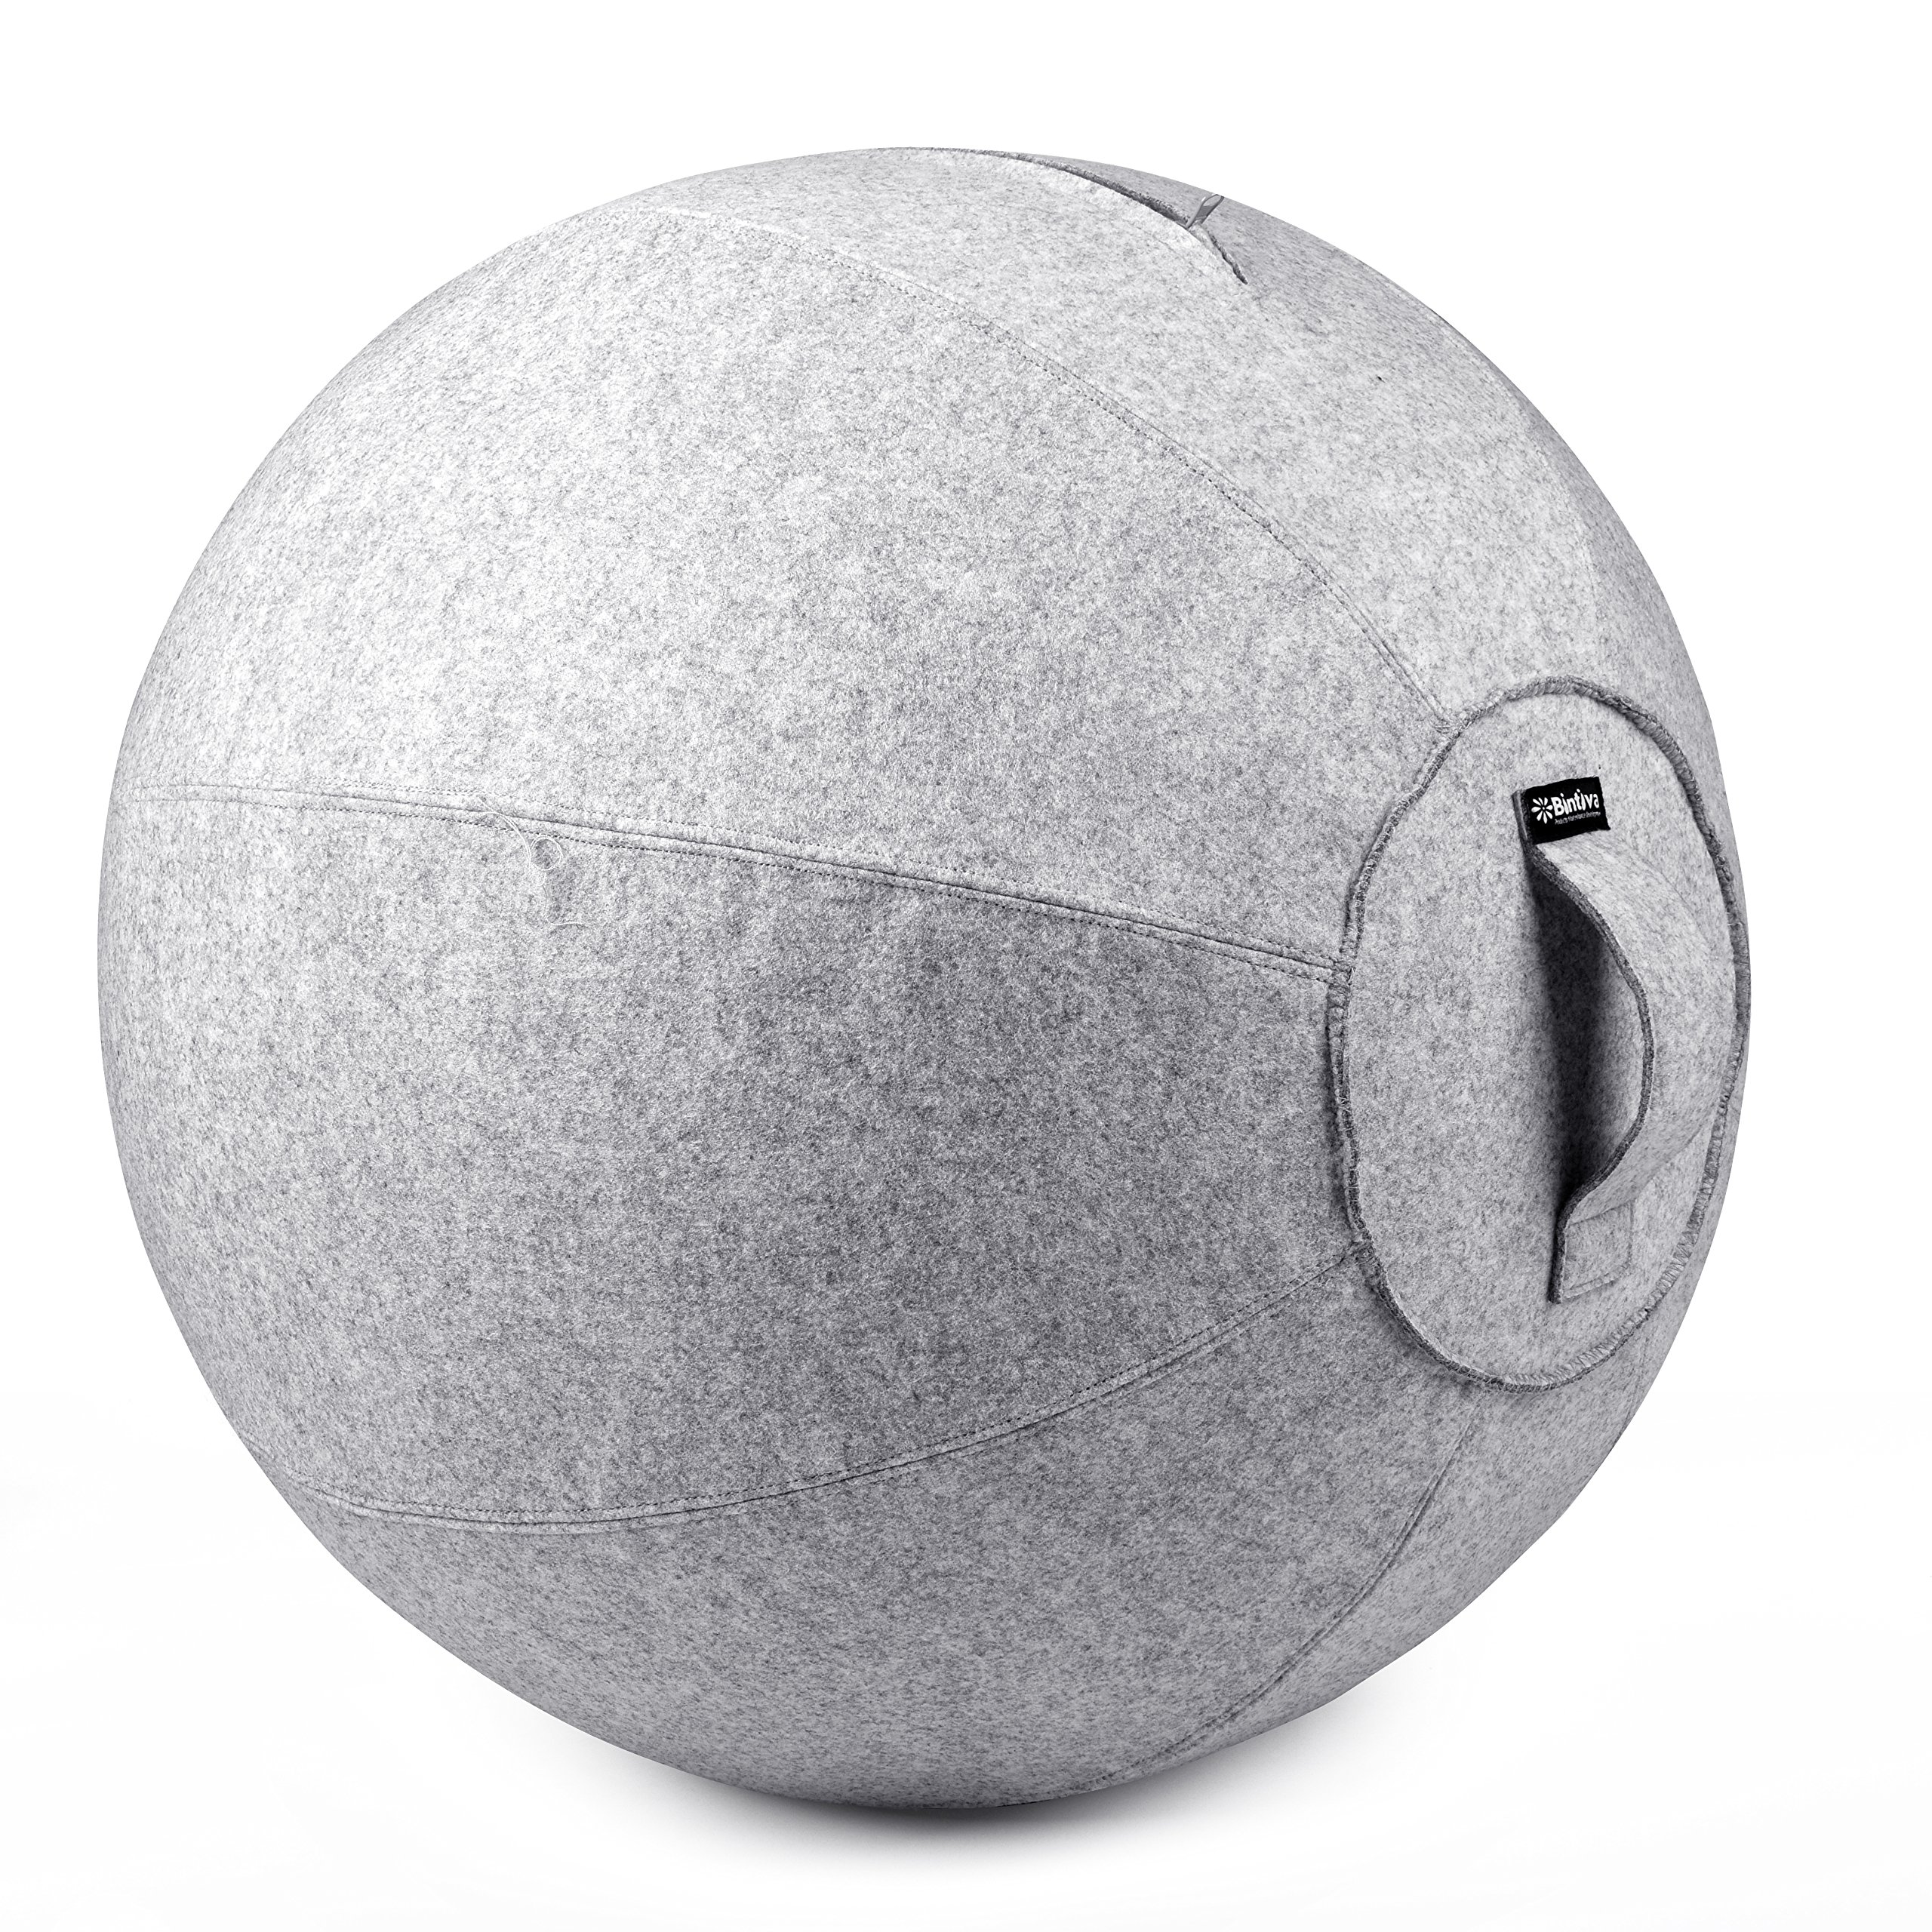 Stability Ball Chair For Office - Ergonomic Seating/Labor Birthing Pregnancy/Yoga Balance Stability Exercise Fitness